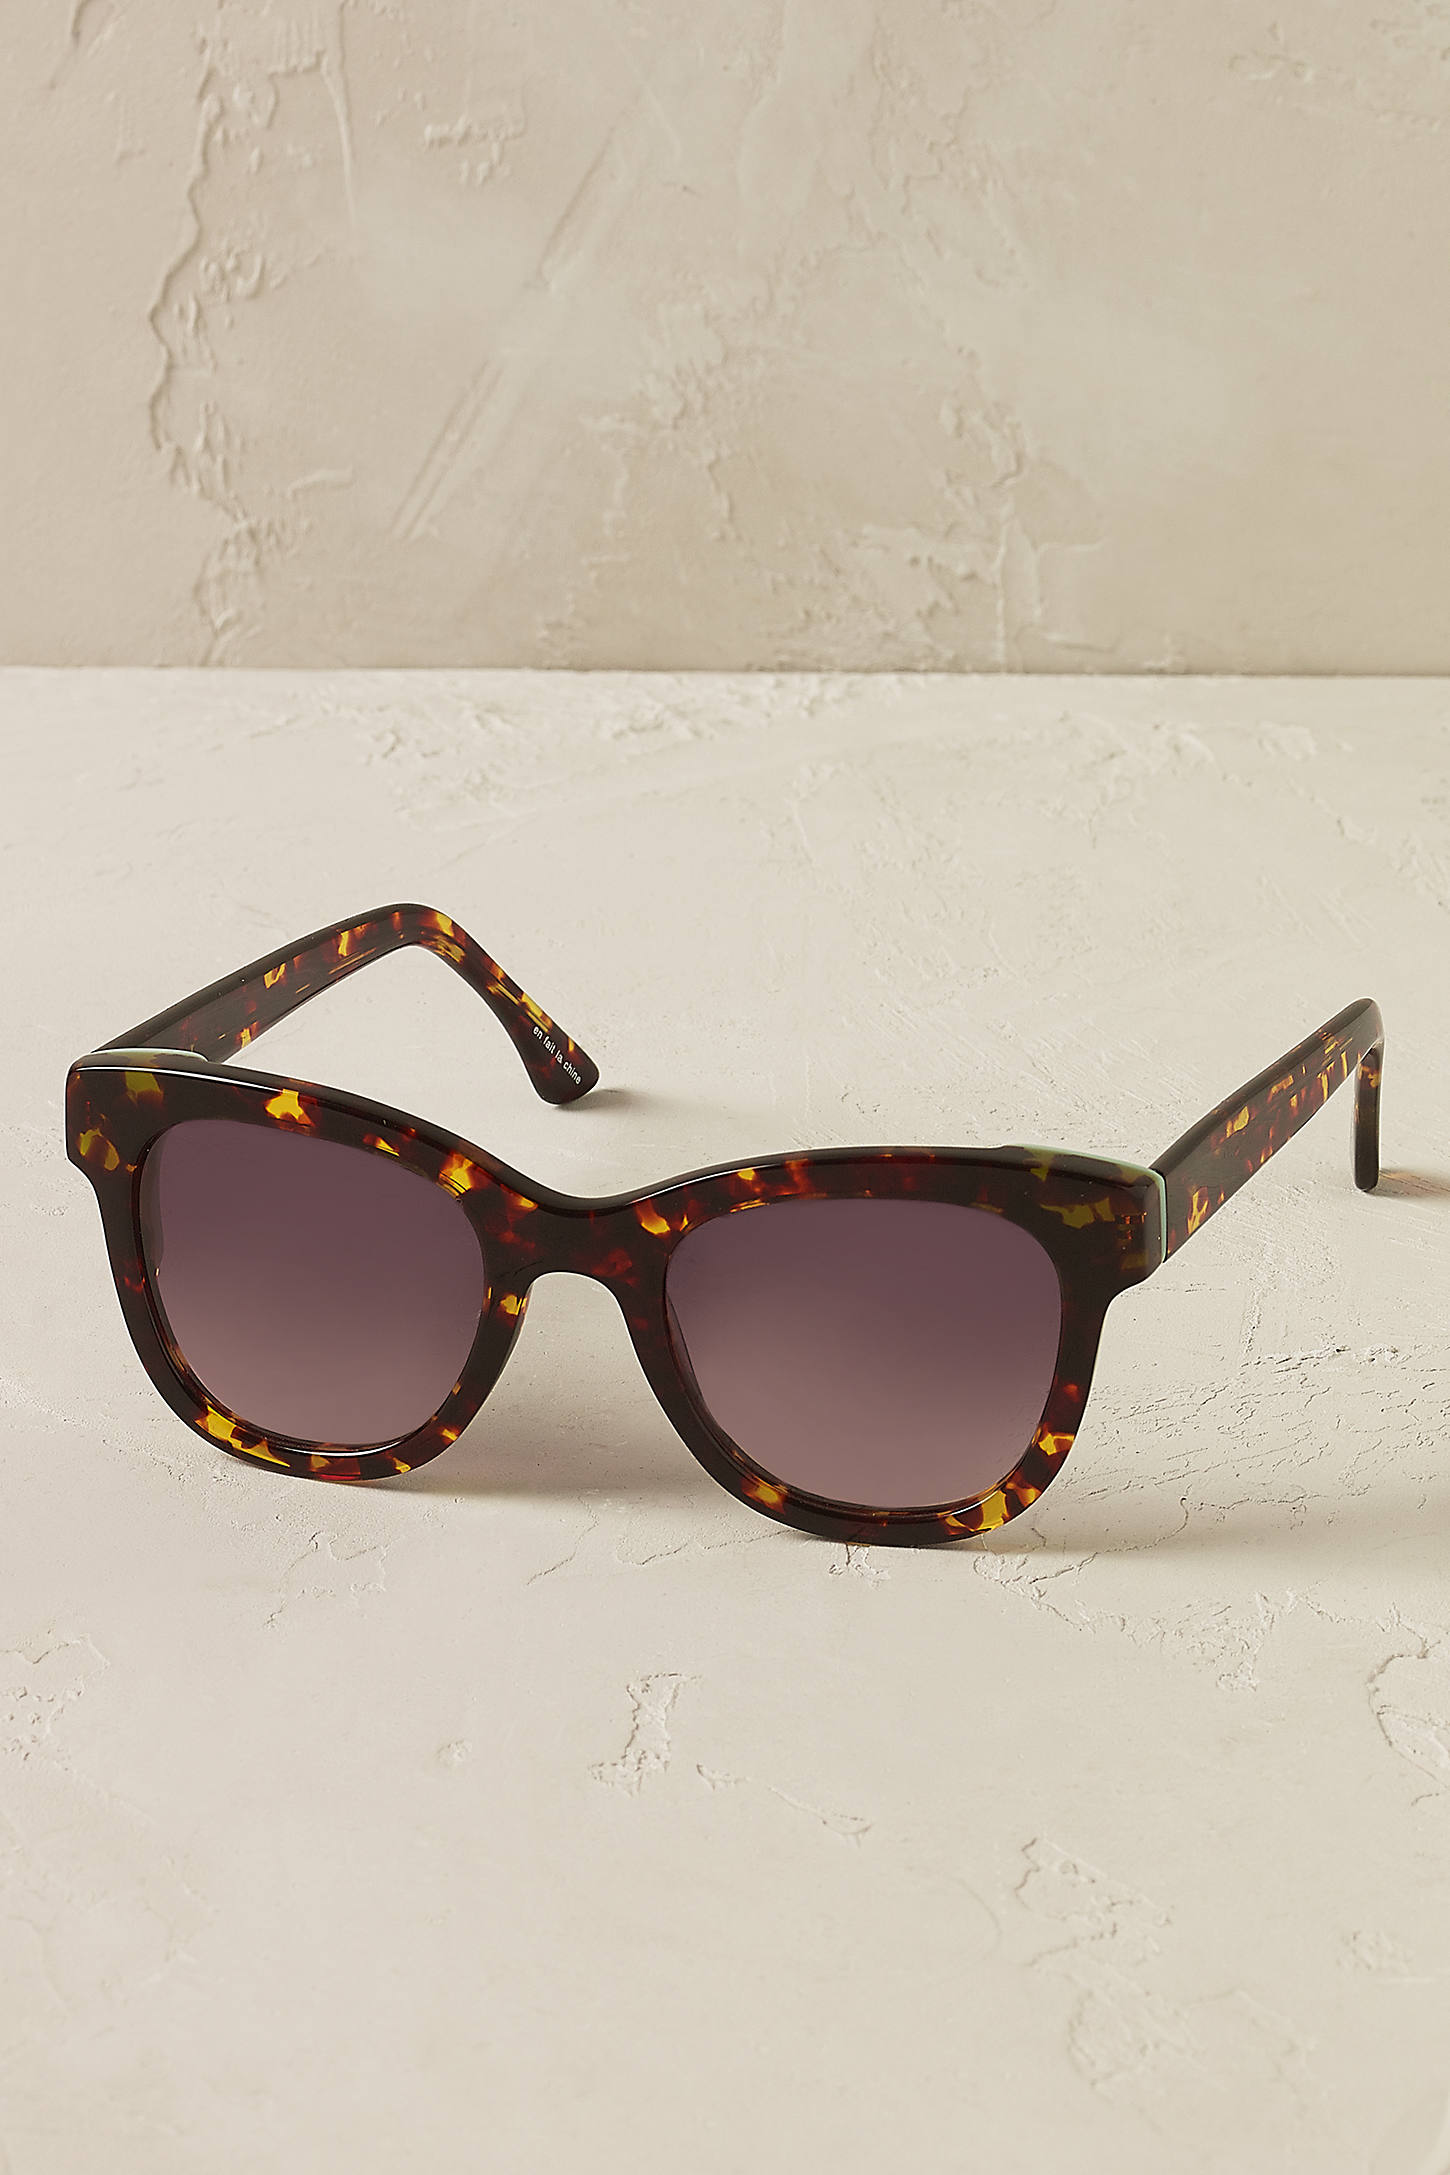 Minted Wayfarer Sunglasses